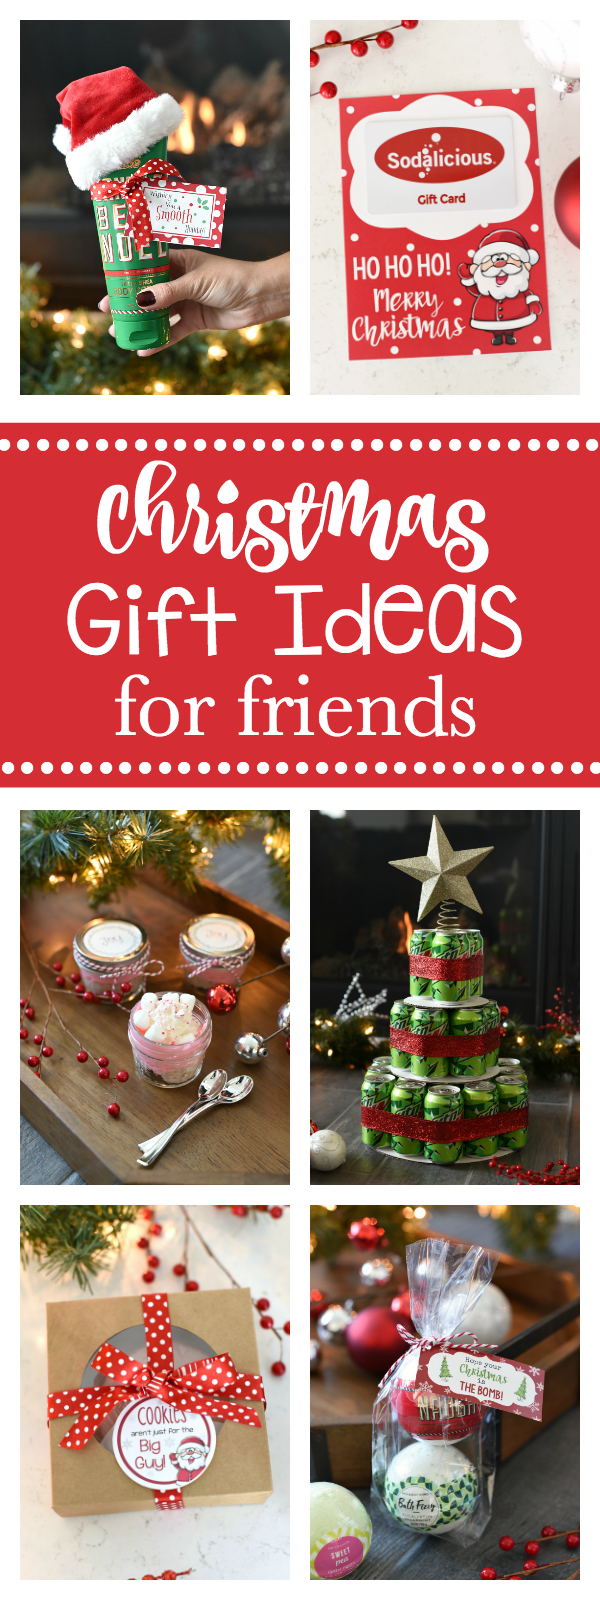 Great Gift Ideas for your Best Girlfriends or BFFs this Christmas-Things your friends will love to receive as Christmas gifts that are also easy for you to pull off! #christmas #christmasgifts